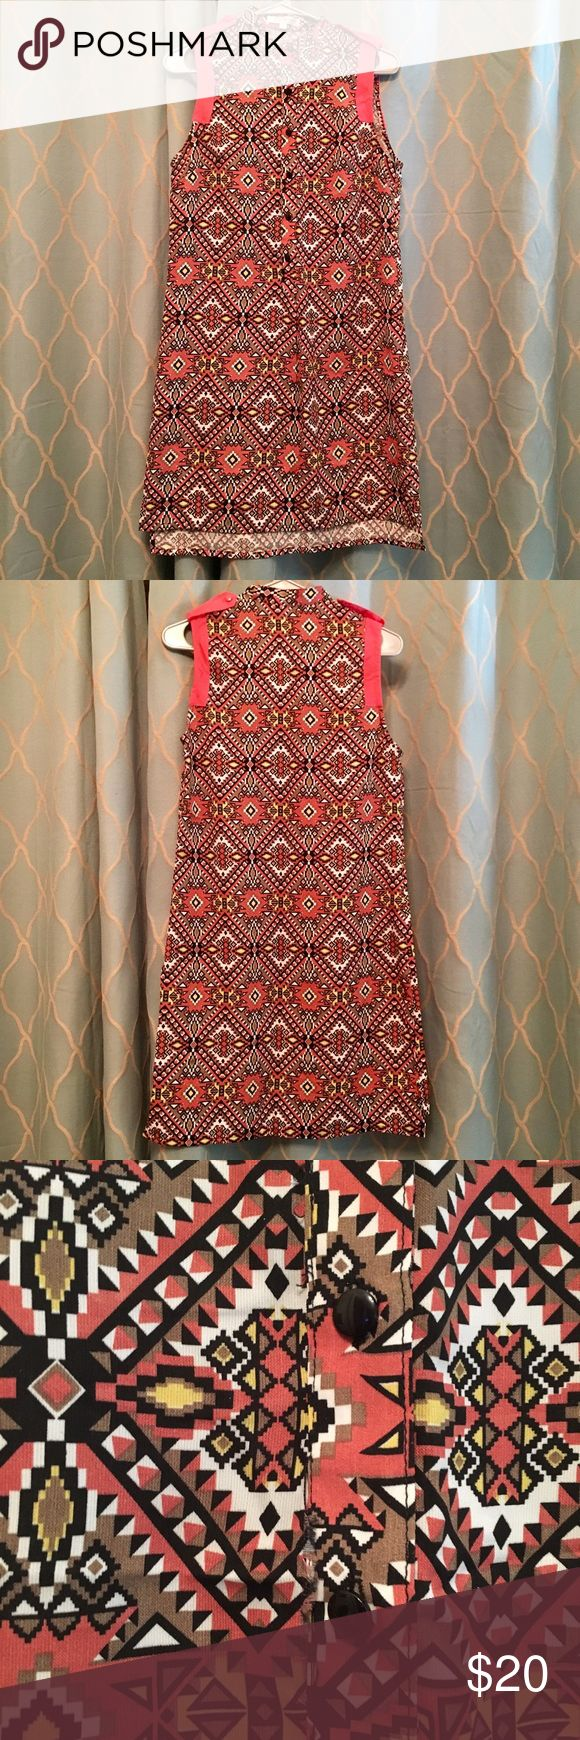 Joy Joy Aztec Print  Sleeveless Dress Lovely Aztec print dress from Joy Joy in size small. The pattern includes several colors including coral, brown, black, yellow, and cream. Dress is a light material made of 100% Viscose. Cute button detail in front of Dress allows one to create different looks with or without necklaces. Worn 2-3 times, in excellent condition! Joy Joy Dresses